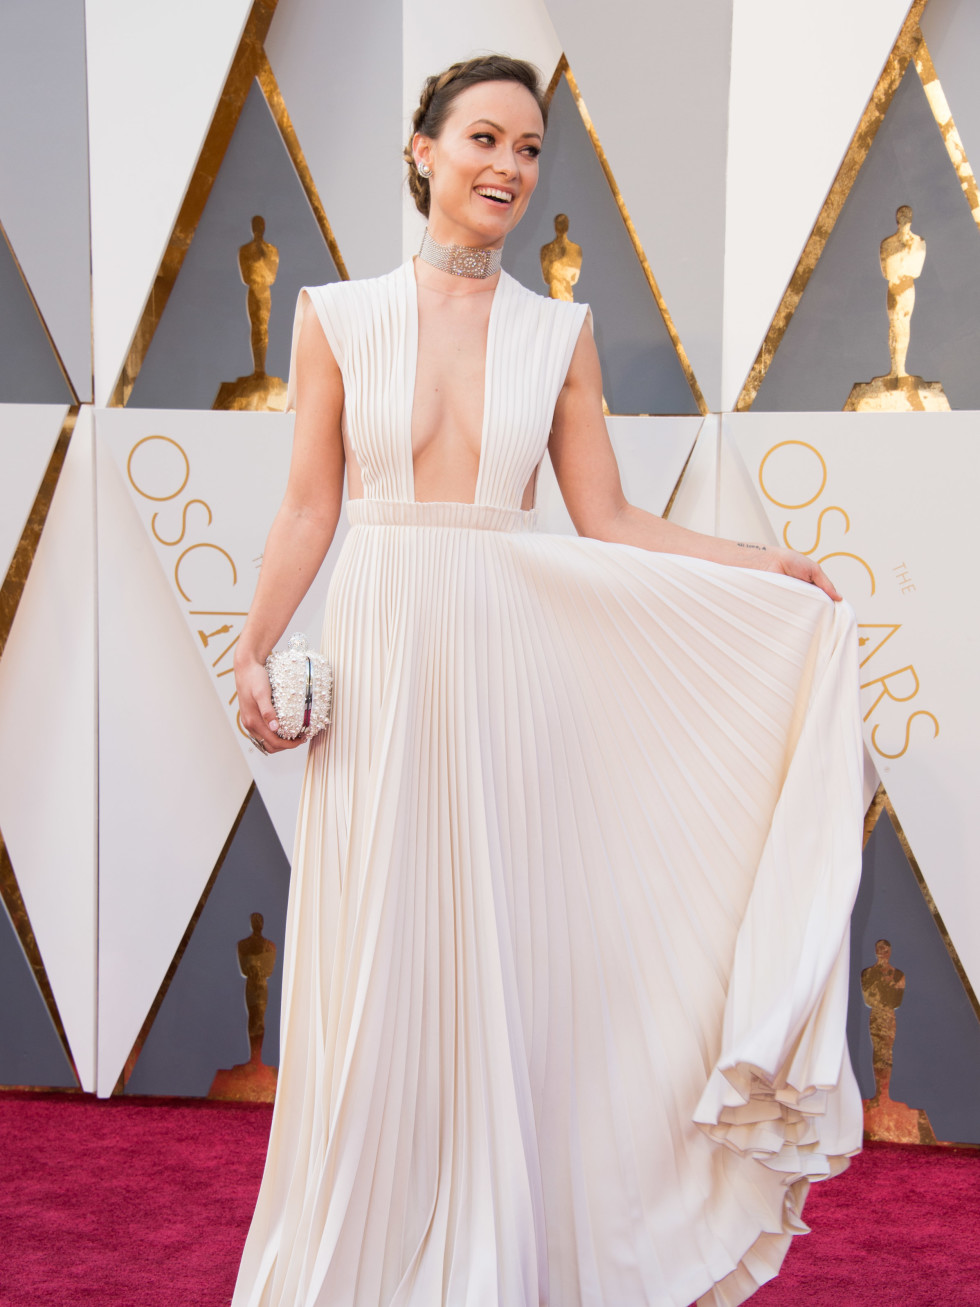 Olivia Wilde at Oscars